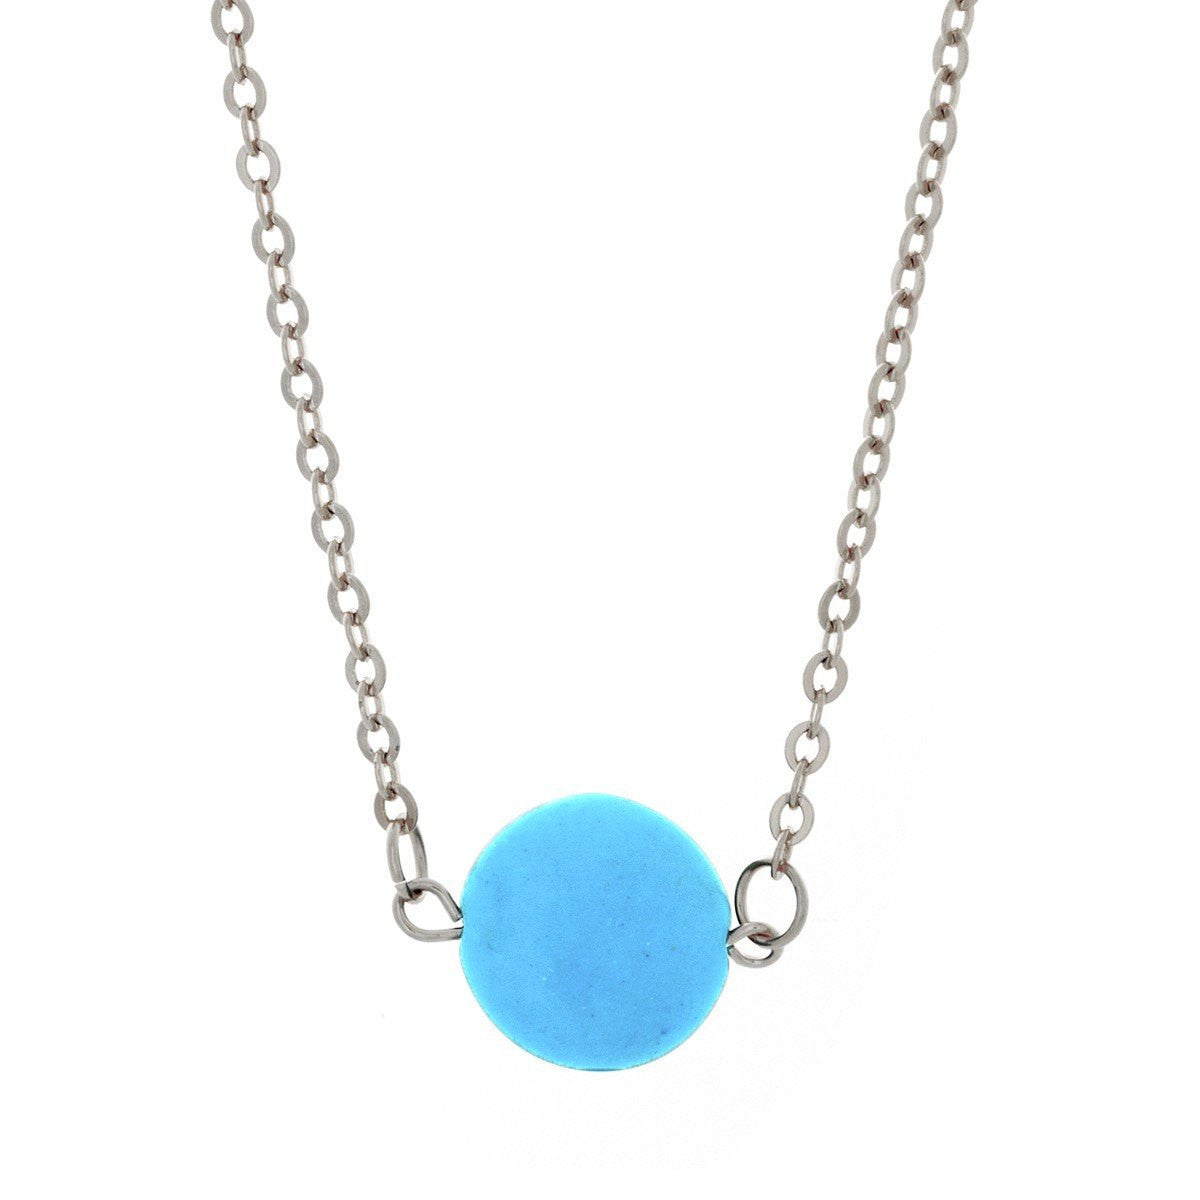 aaa turquoise beads necklace gems products world knotted round new